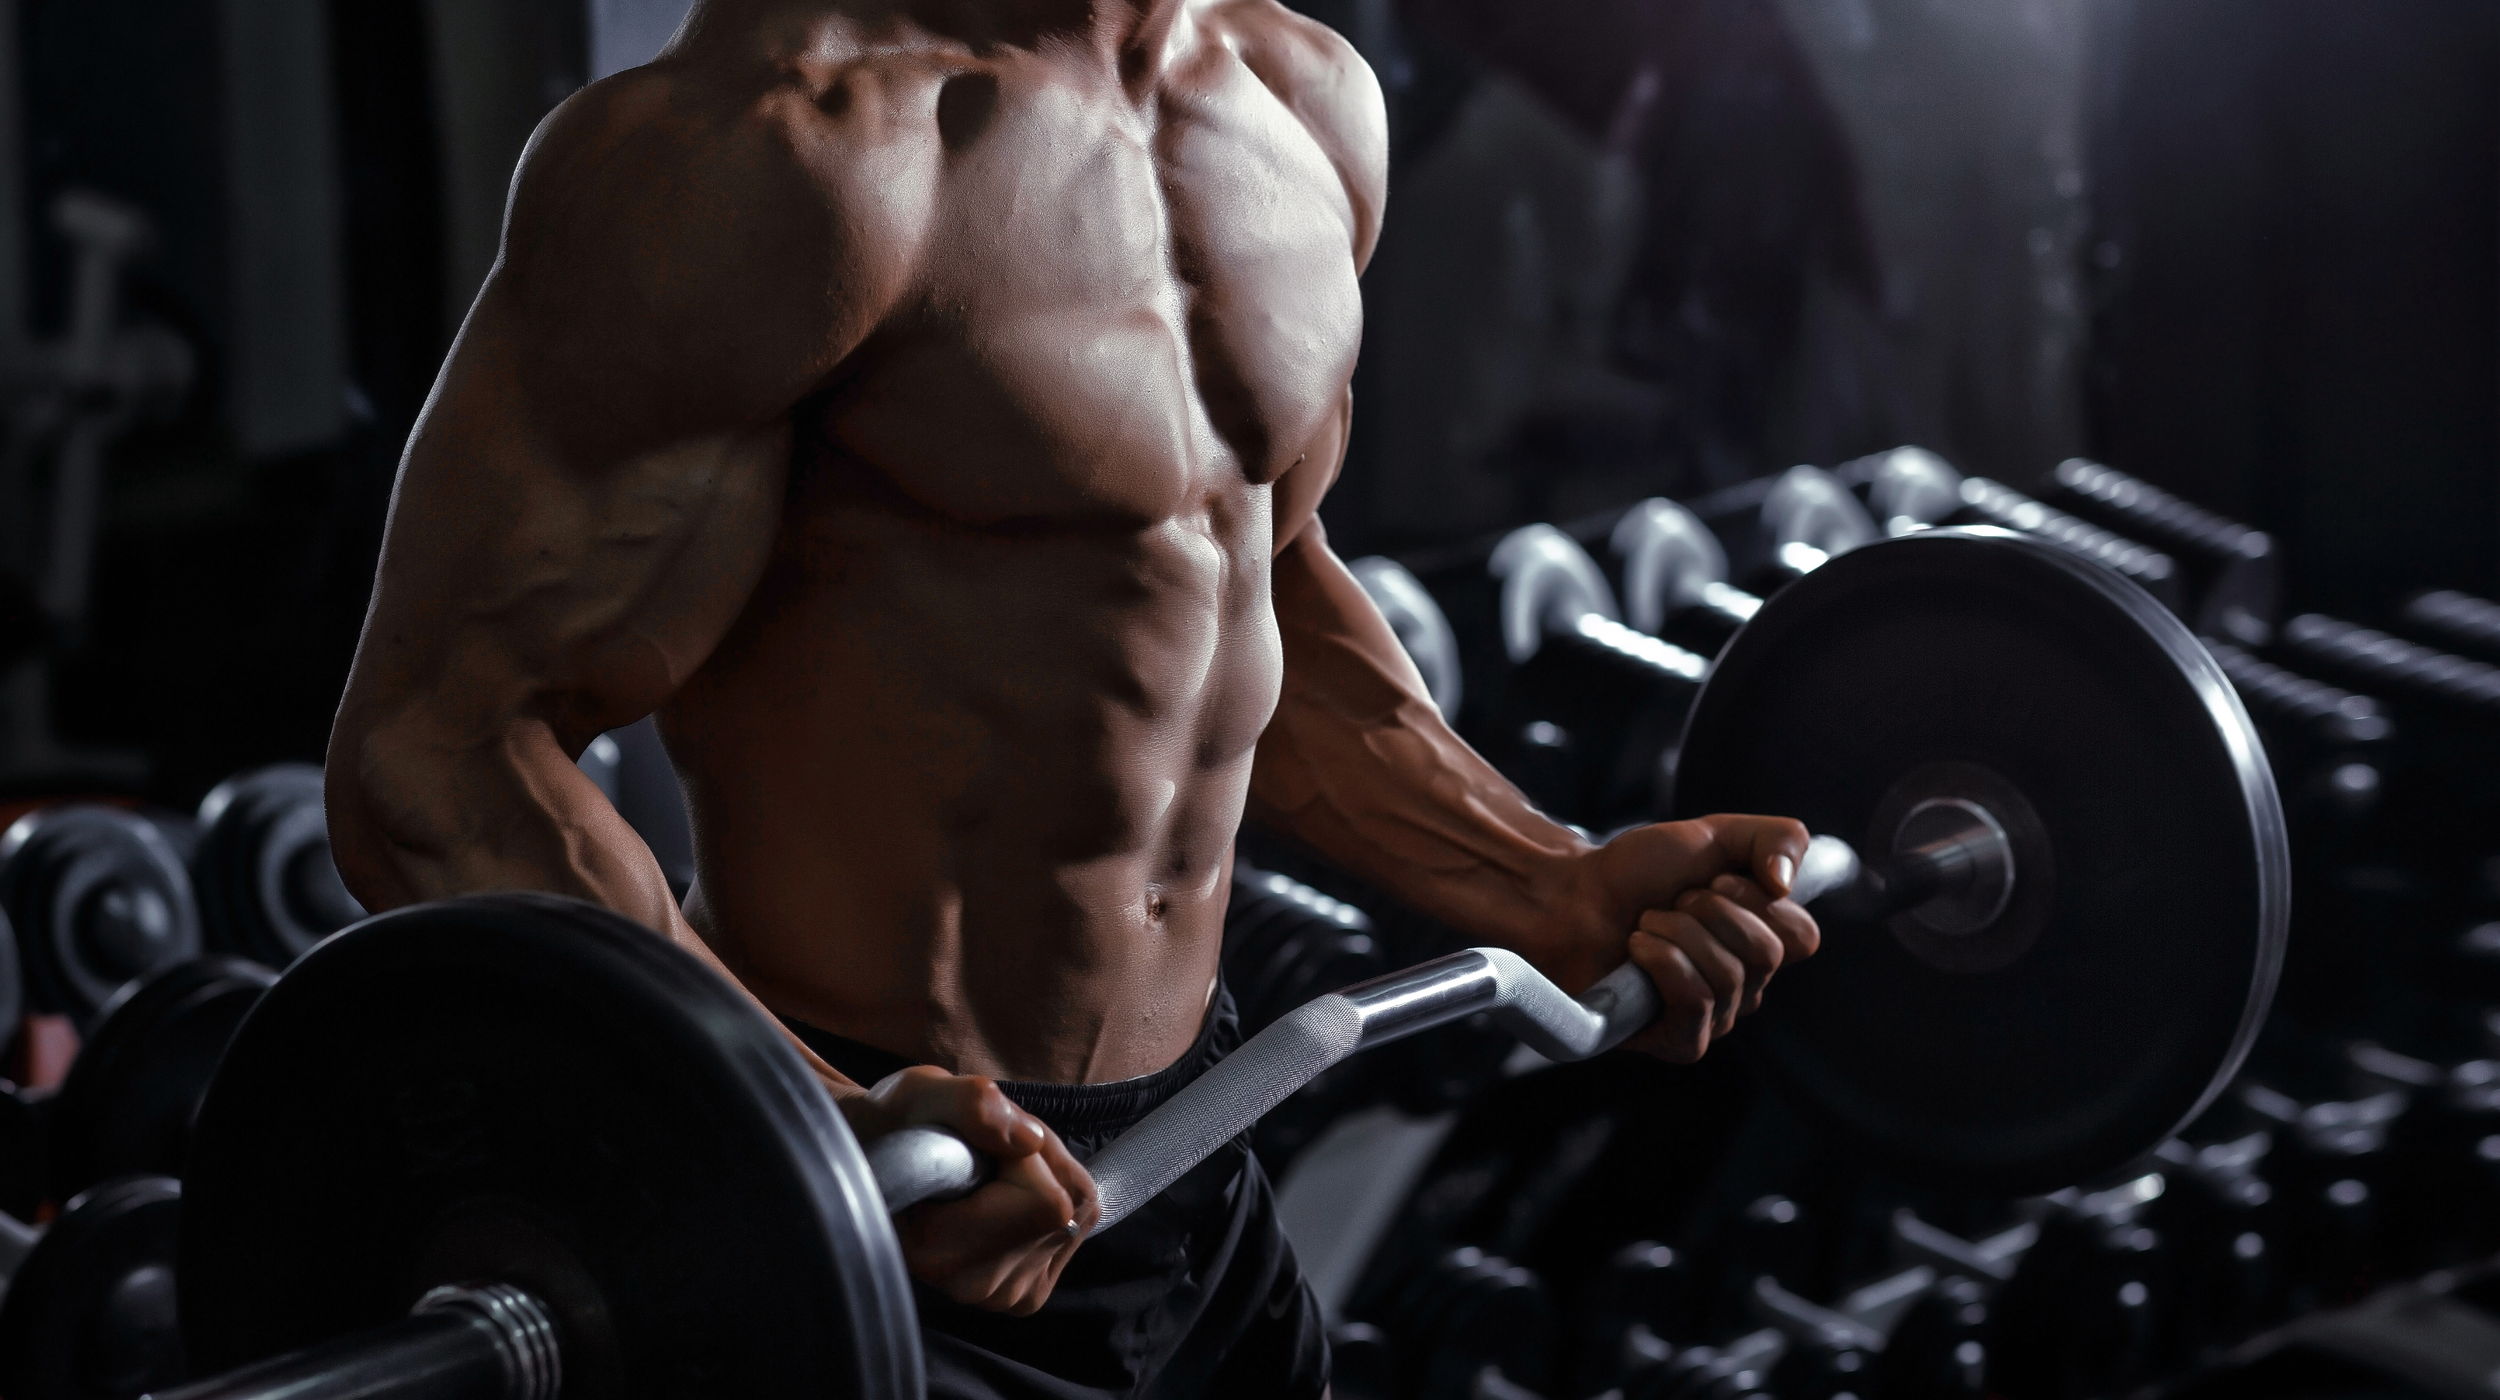 How to Get Big Biceps if You are a Skinny Guy (Hardgainer)